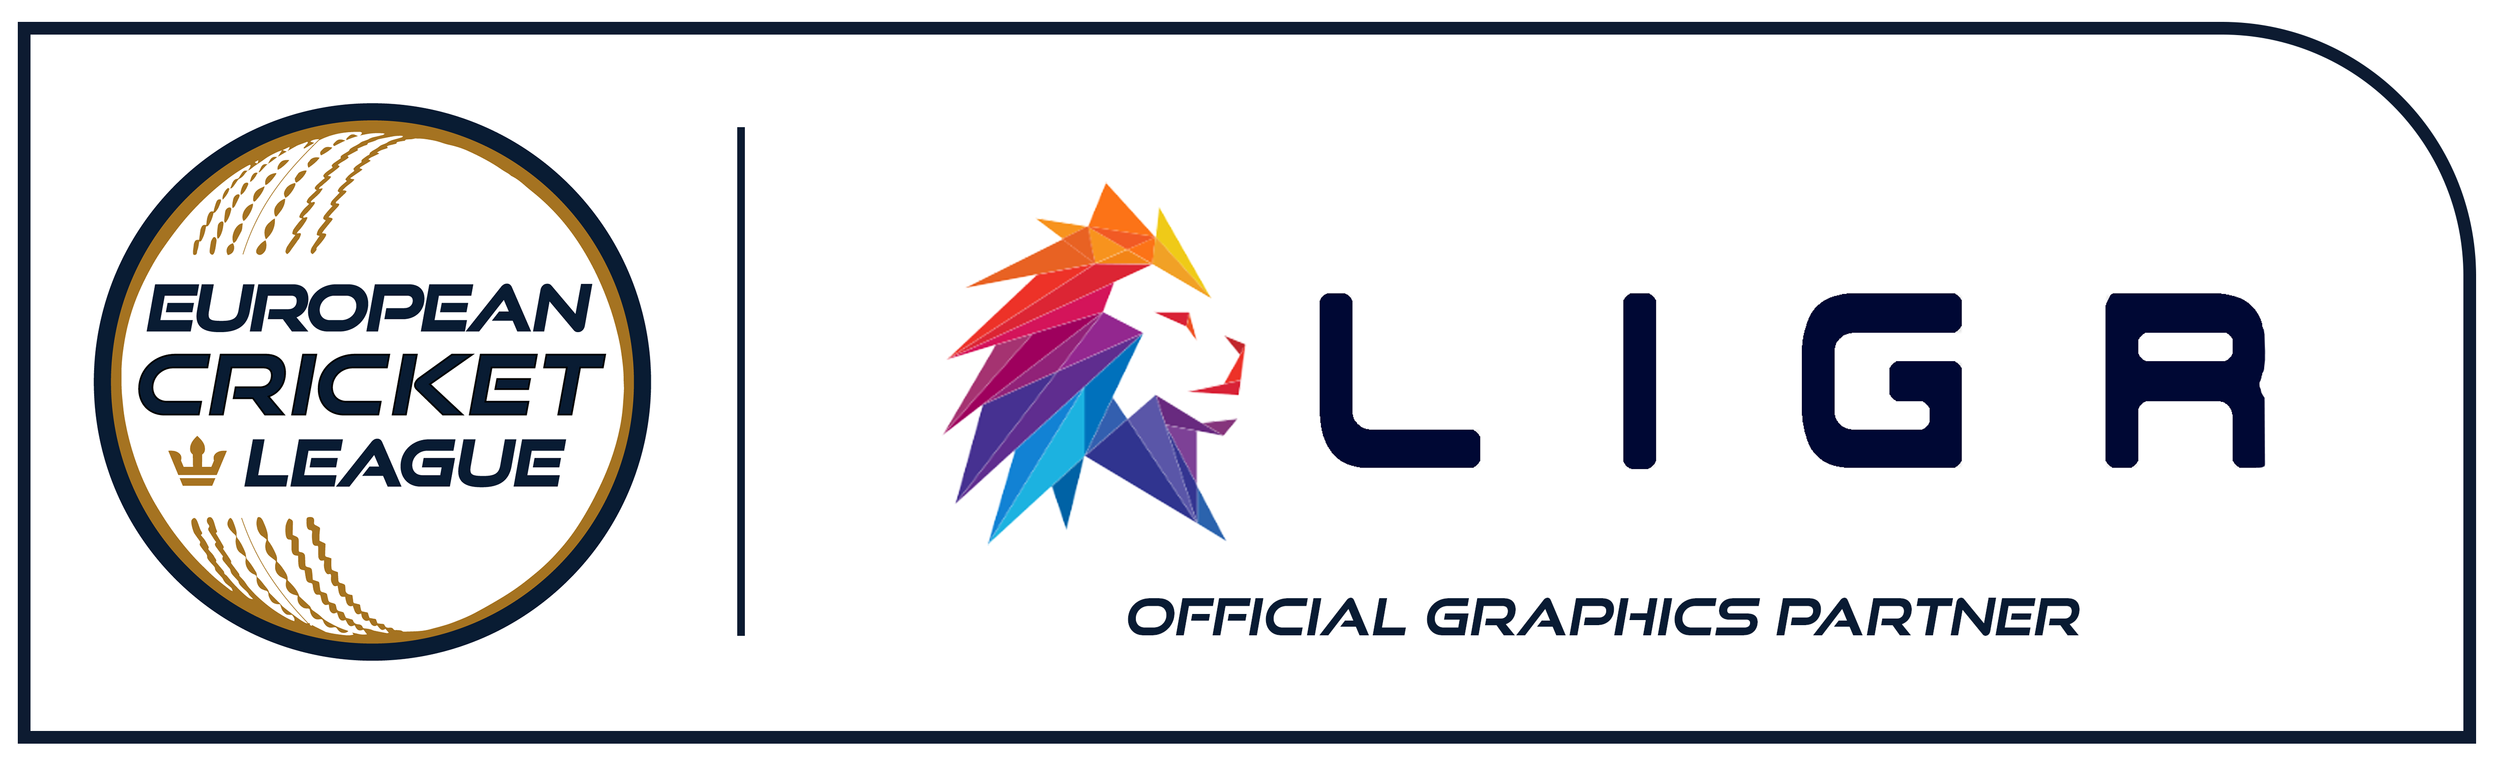 LIGR Live Graphics Systems